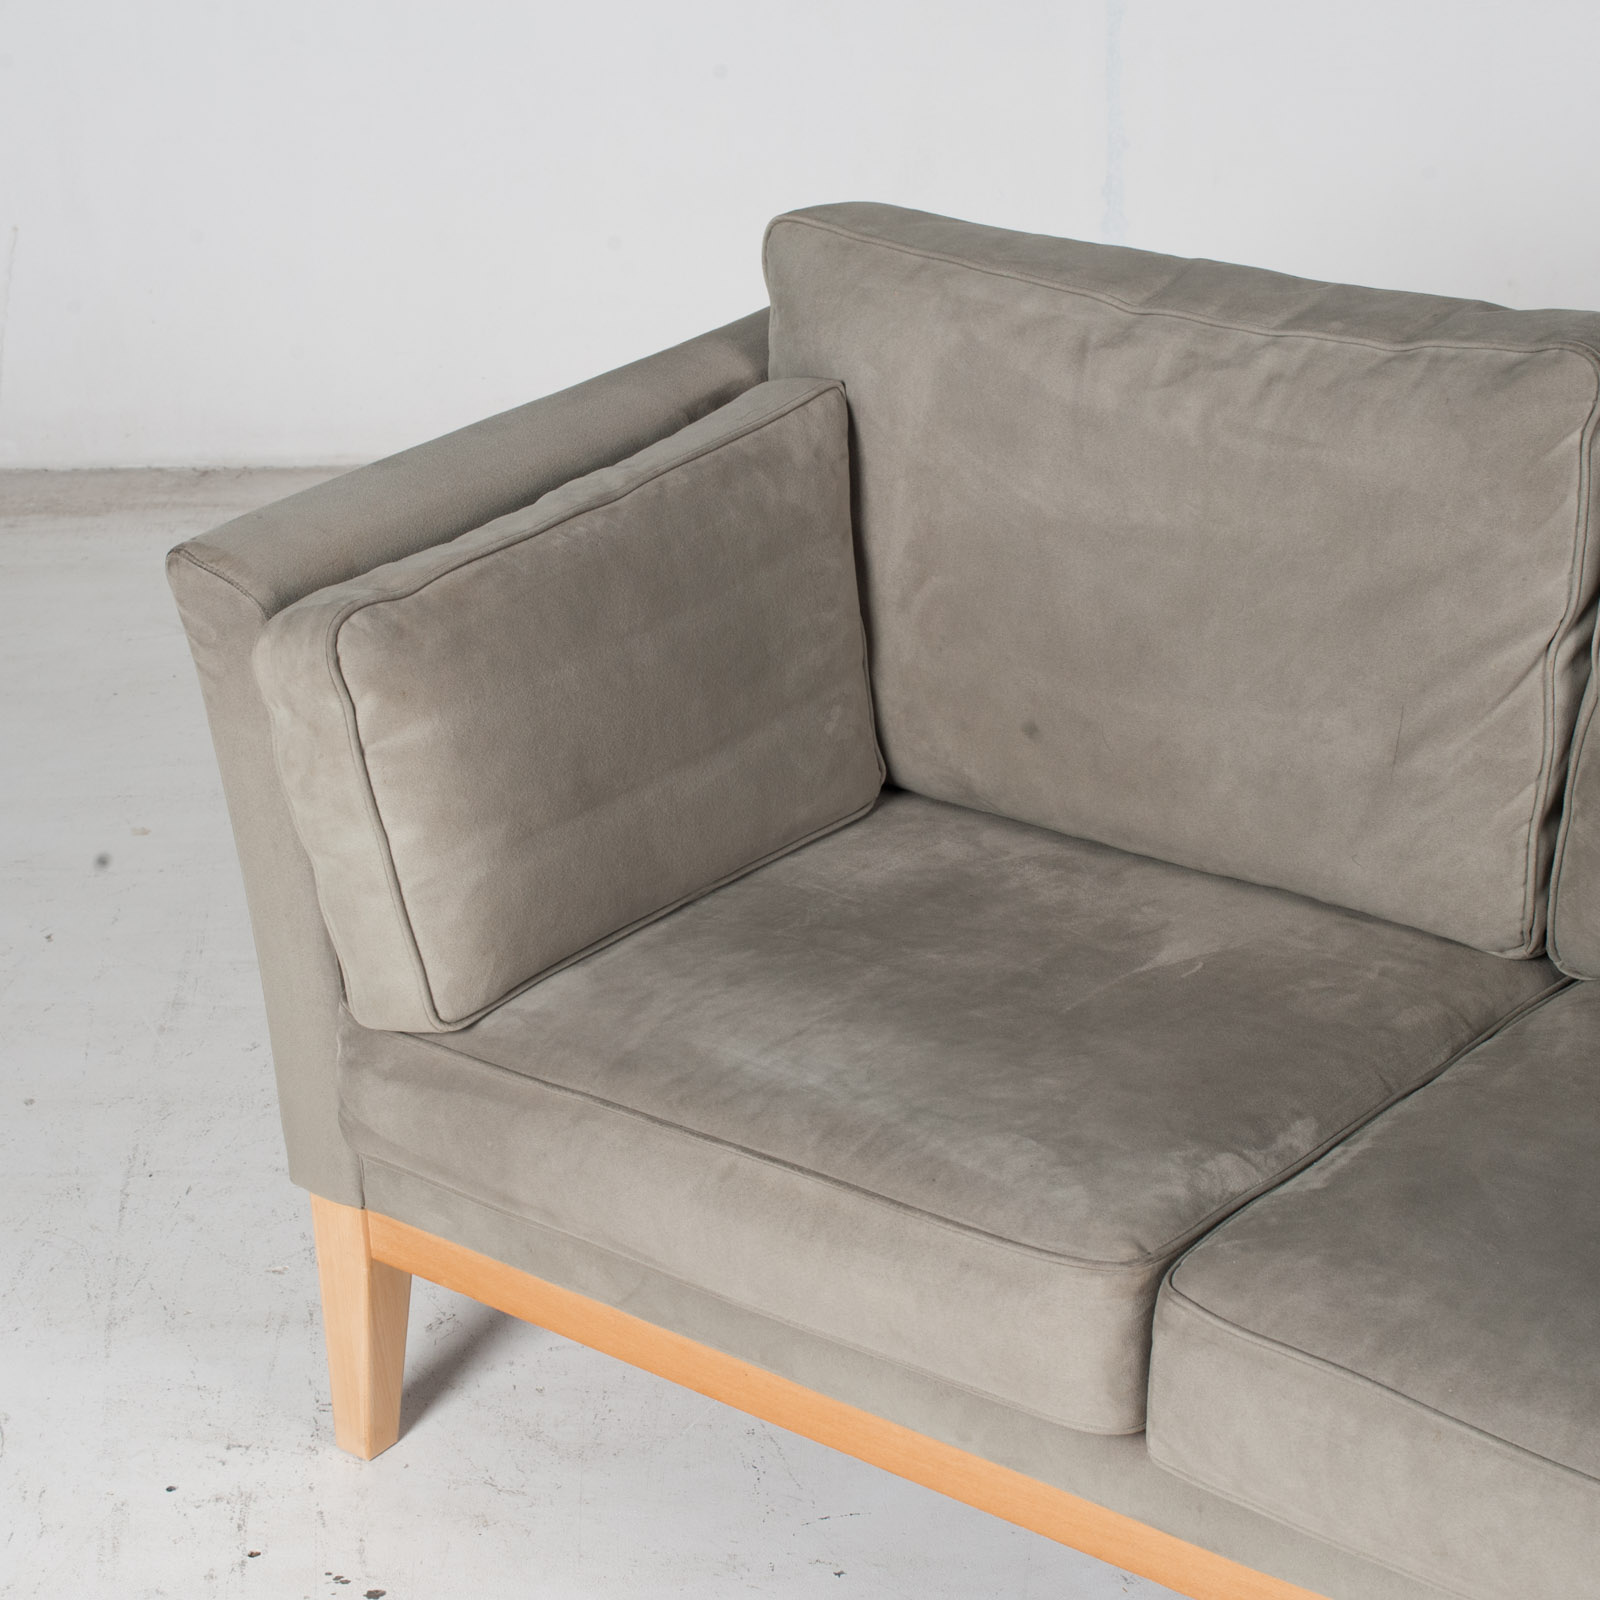 2 Seat Sofa By Stouby In Grey Macro Suede, 1960s, Denmark5